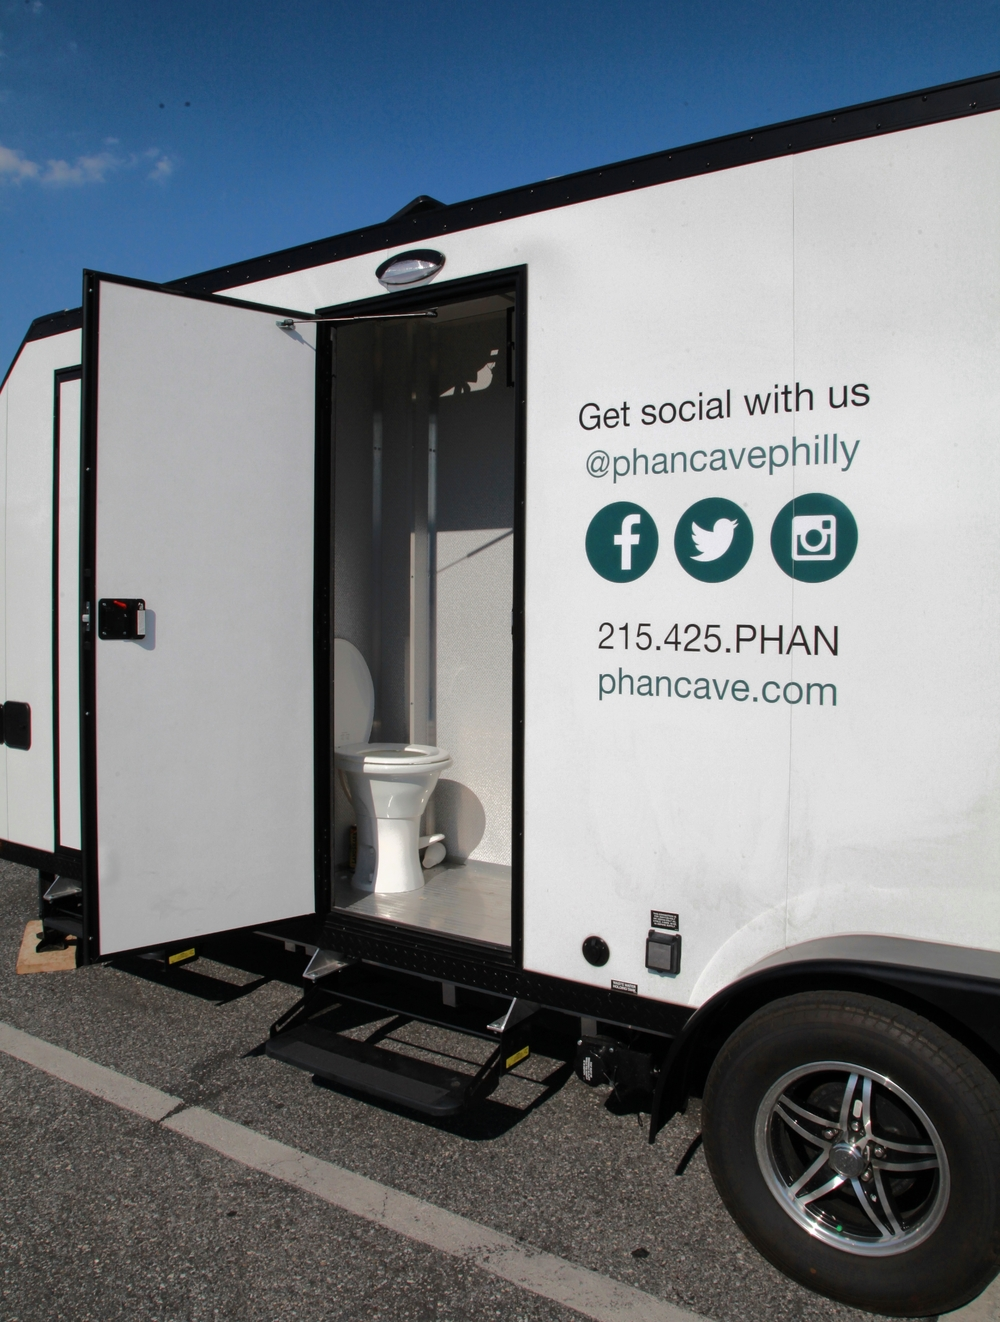 Two private bathrooms for your biggest Phan's!    Rent the Phan Cave for your next tailgate and become the envy of the lots!